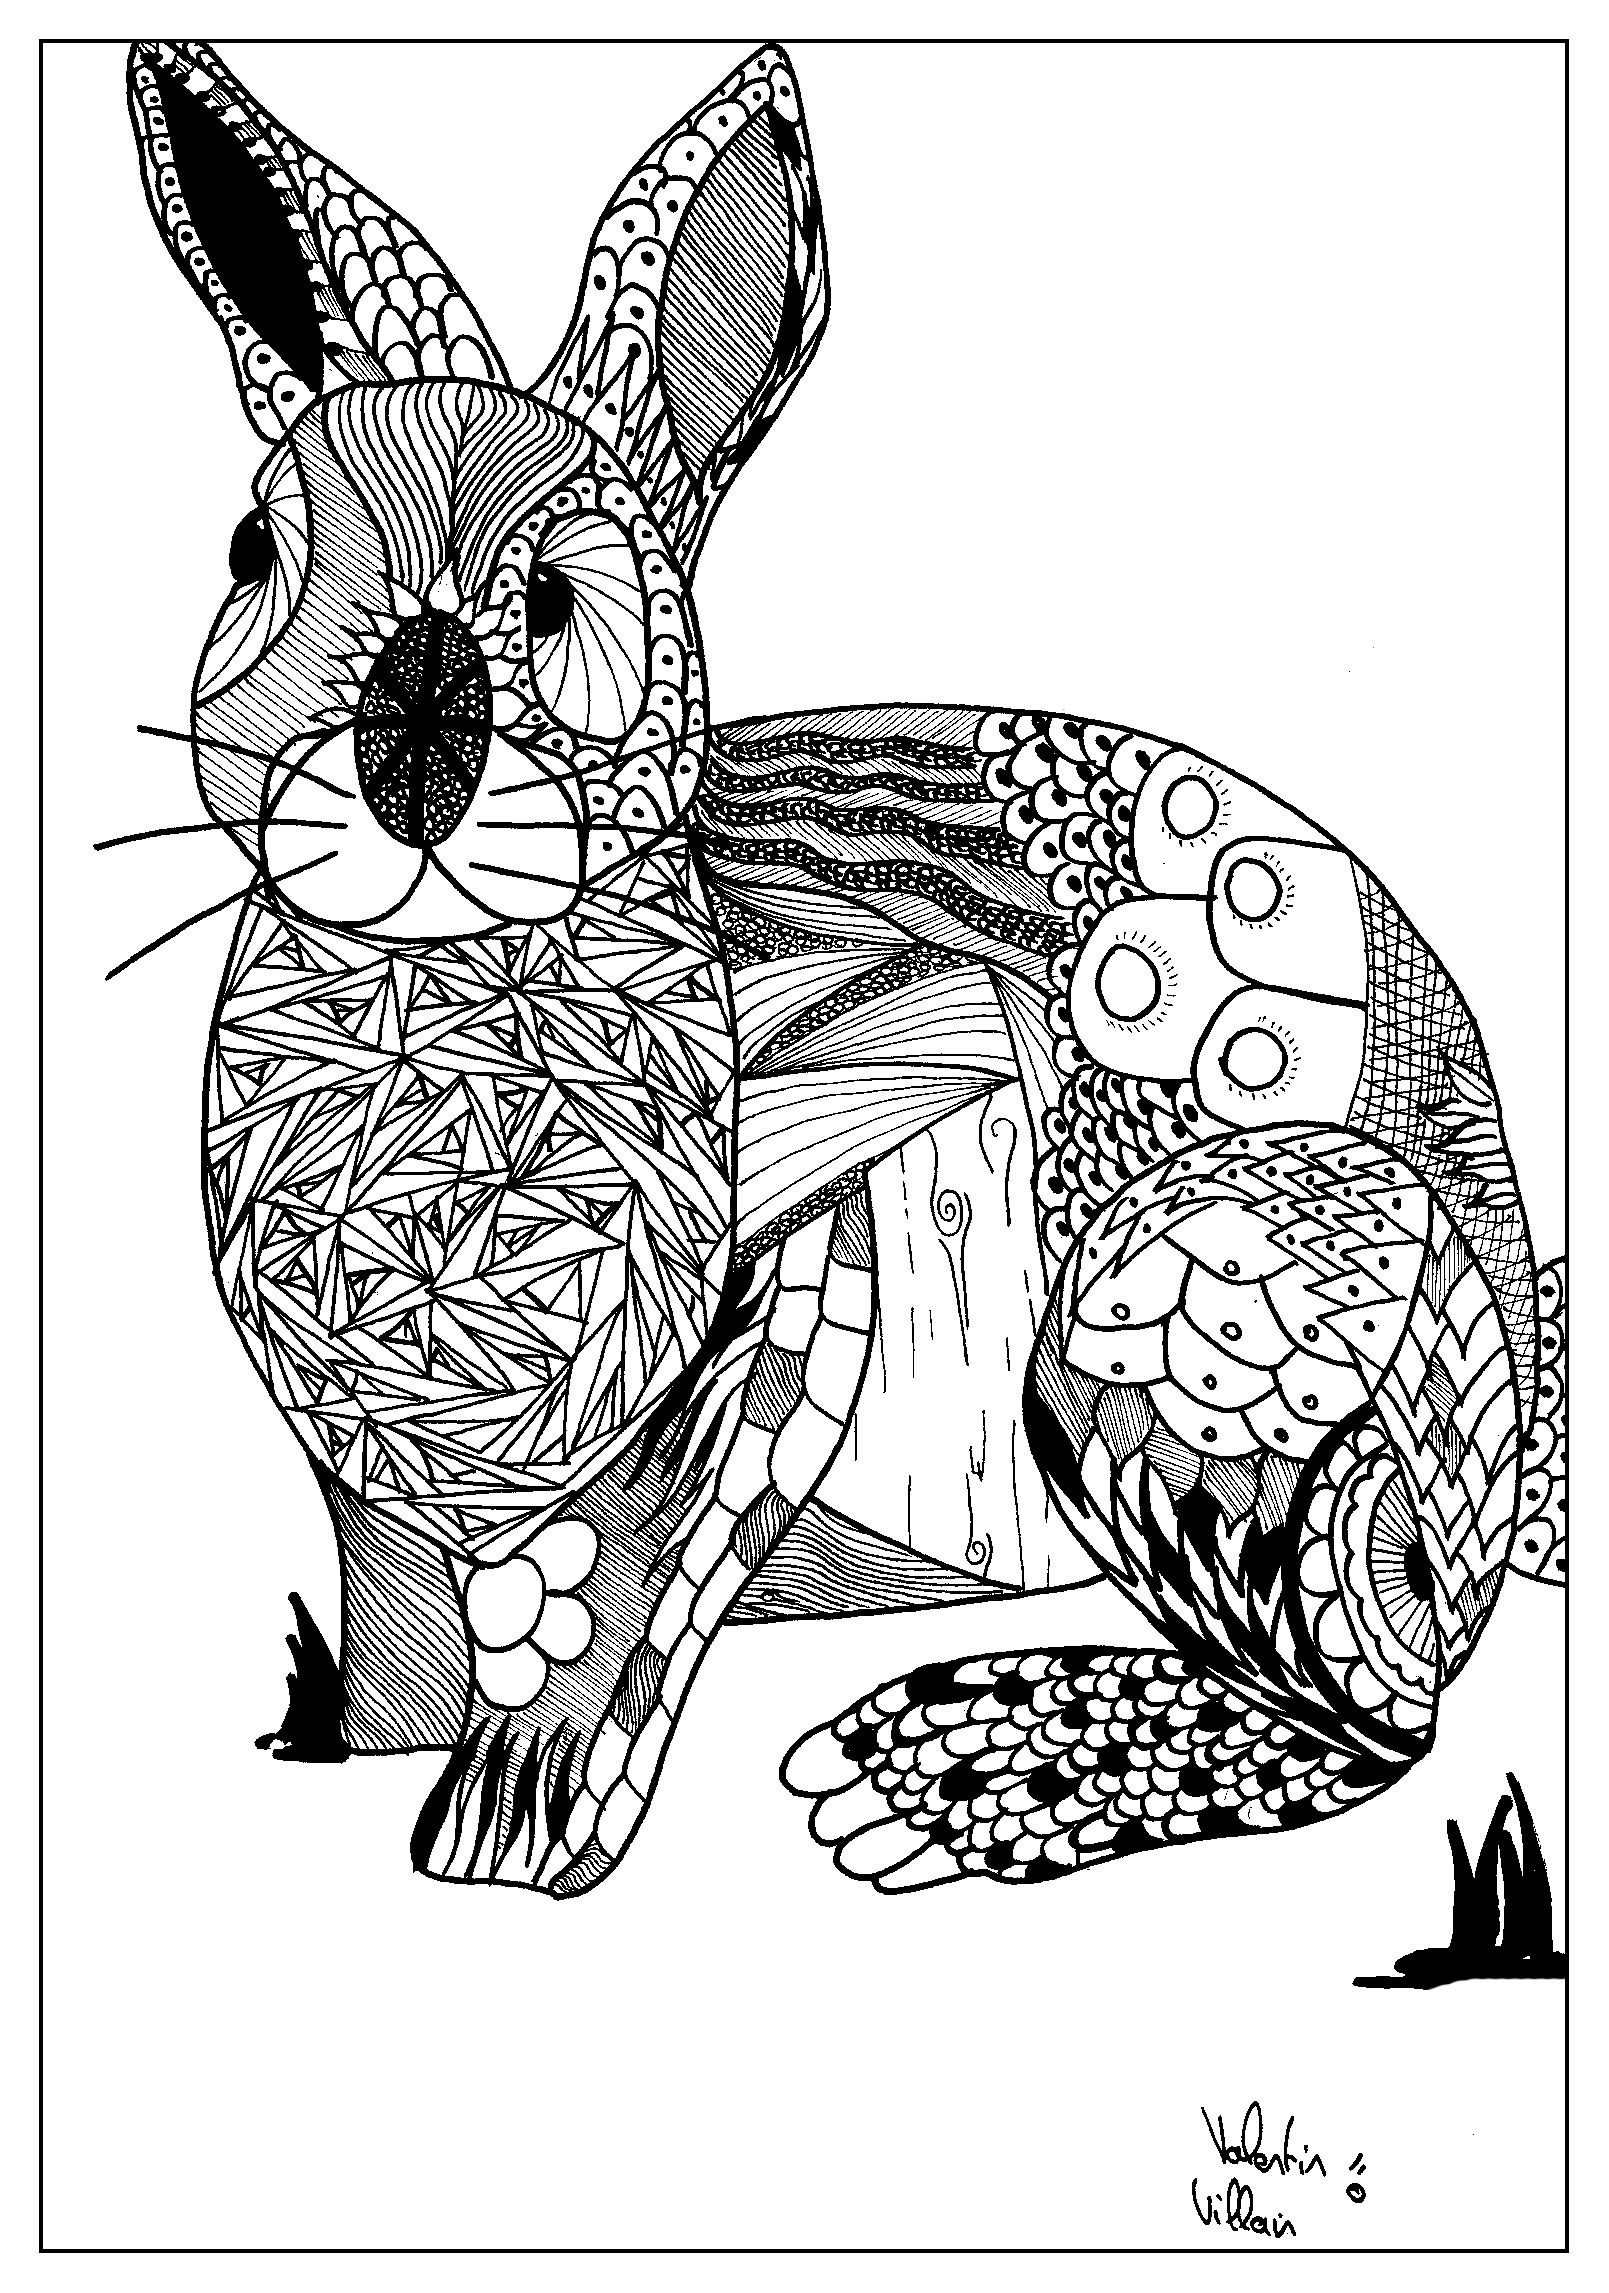 For the Easter a rabbit with a zentangle style, Artist : Valentin